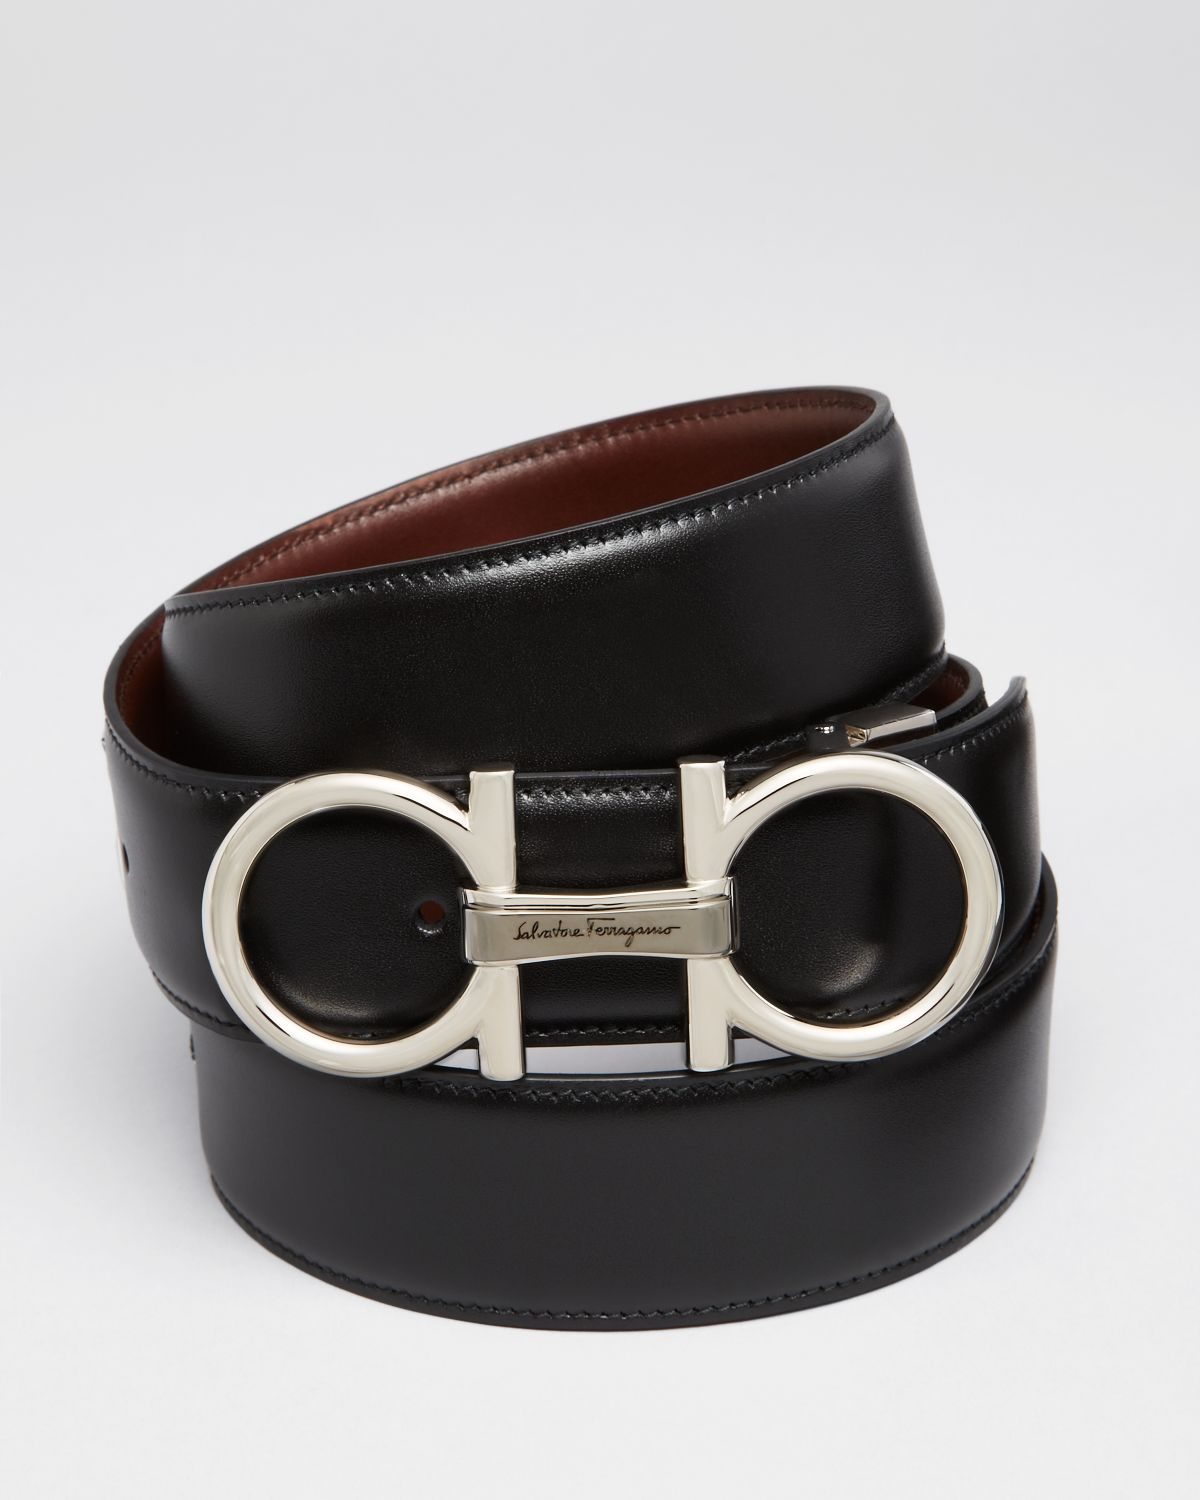 Leather belts are timeless, reliable choices that work with everything from casual jeans to professional suits. Some men's belts feature a single piece of stitched leather, creating a smooth and sleek look. For a bit more texture, consider braided leather belts. These options feature intricately woven pieces of leather.